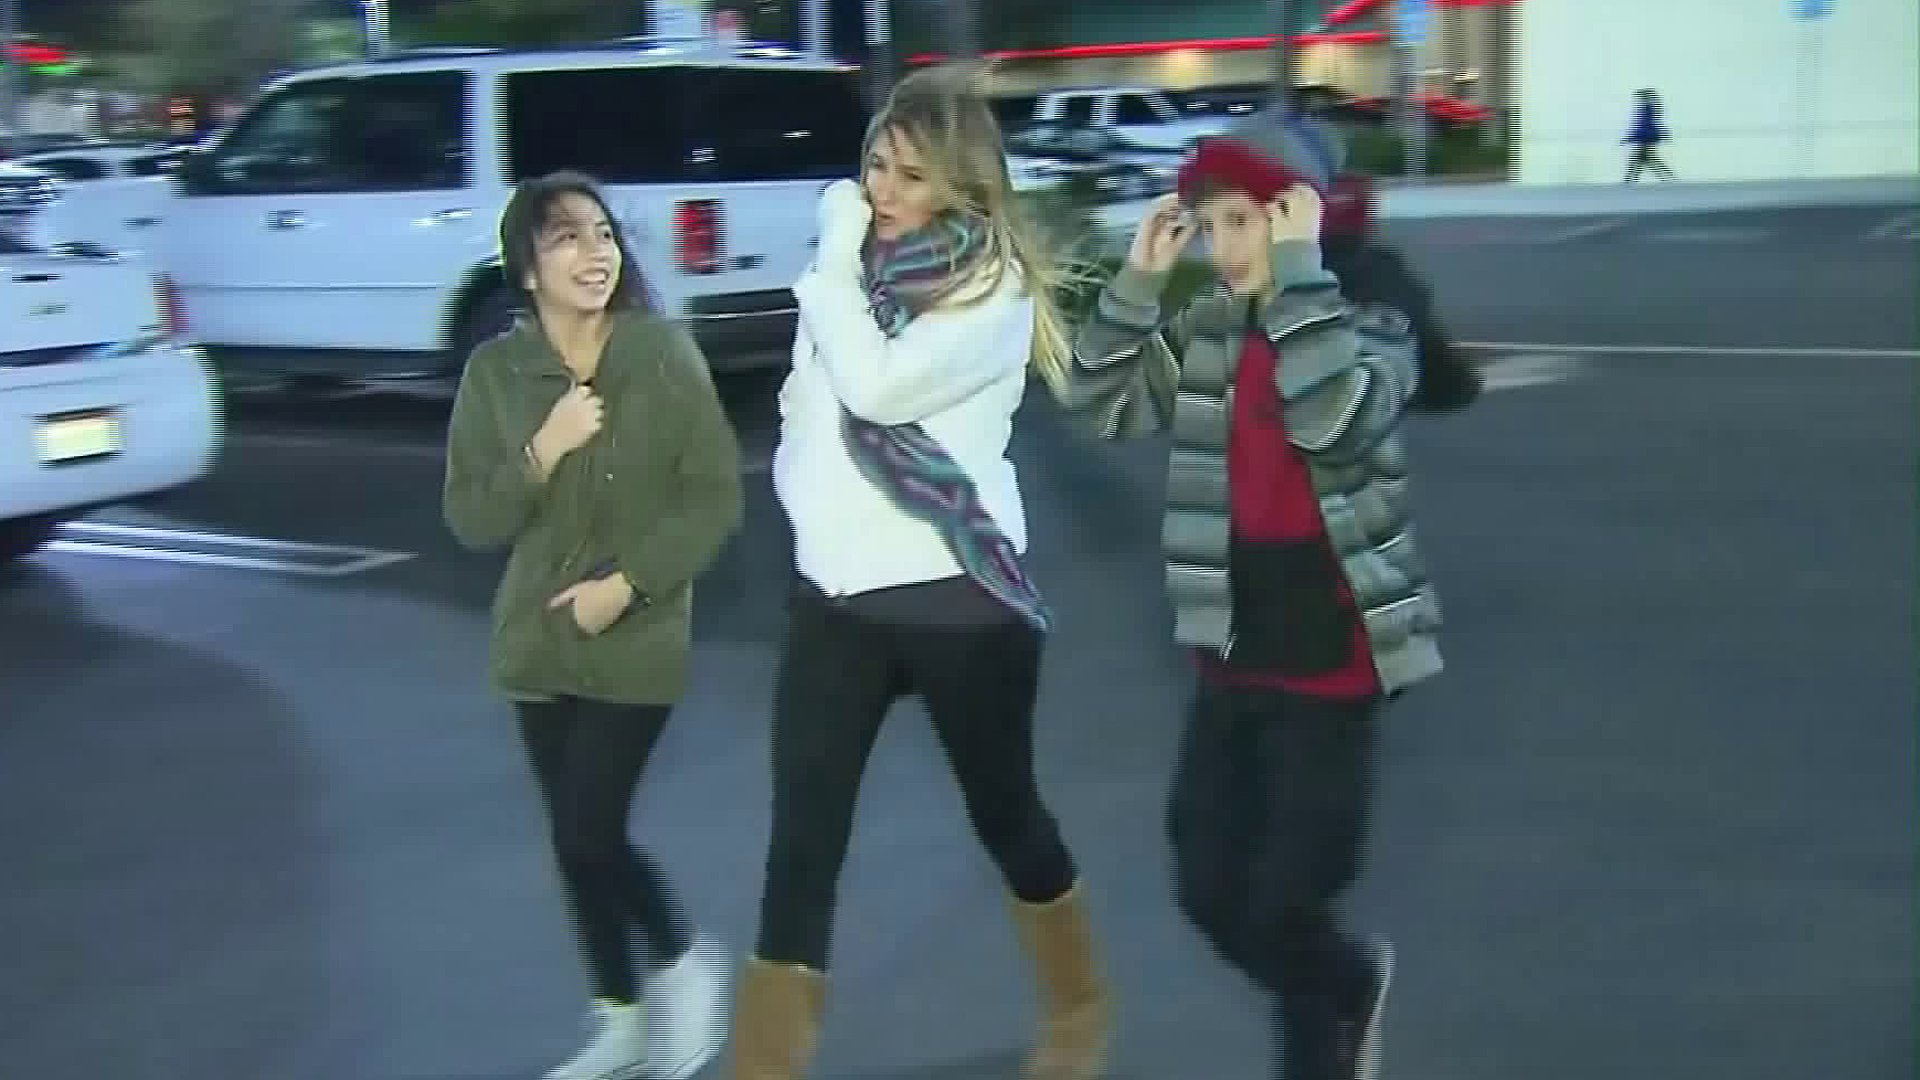 People walk on a cold day in Southern California in this file photo. (Credit: KTLA)